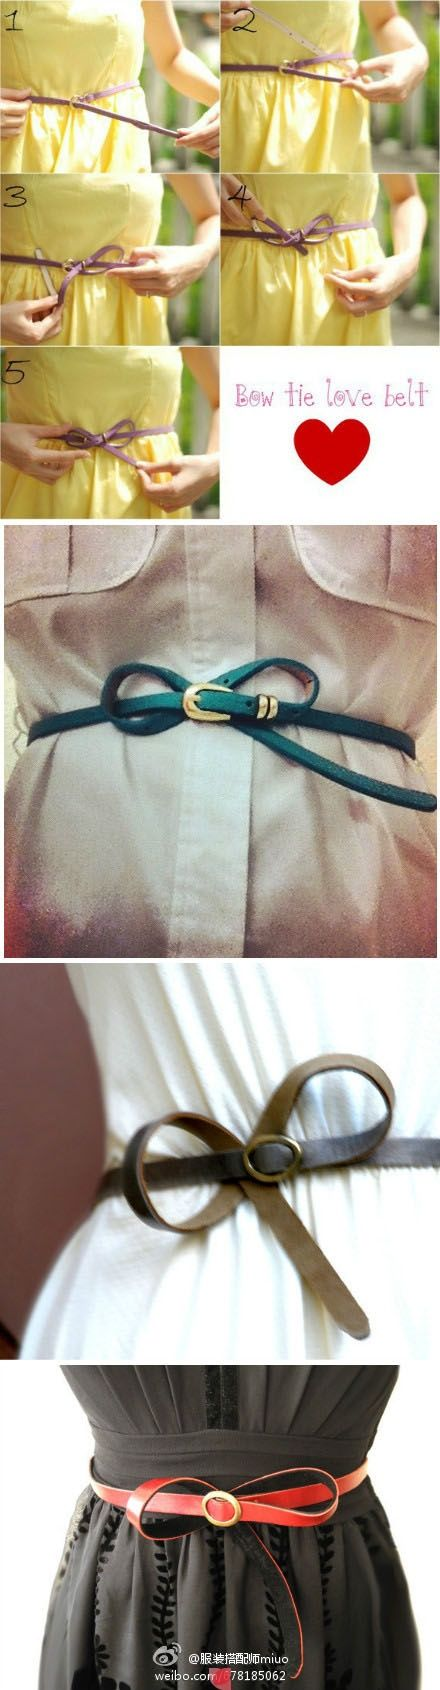 Whoa whoa WHOA!!! A belt bow?!?! I love it! And my belts shall never be worn the same again.